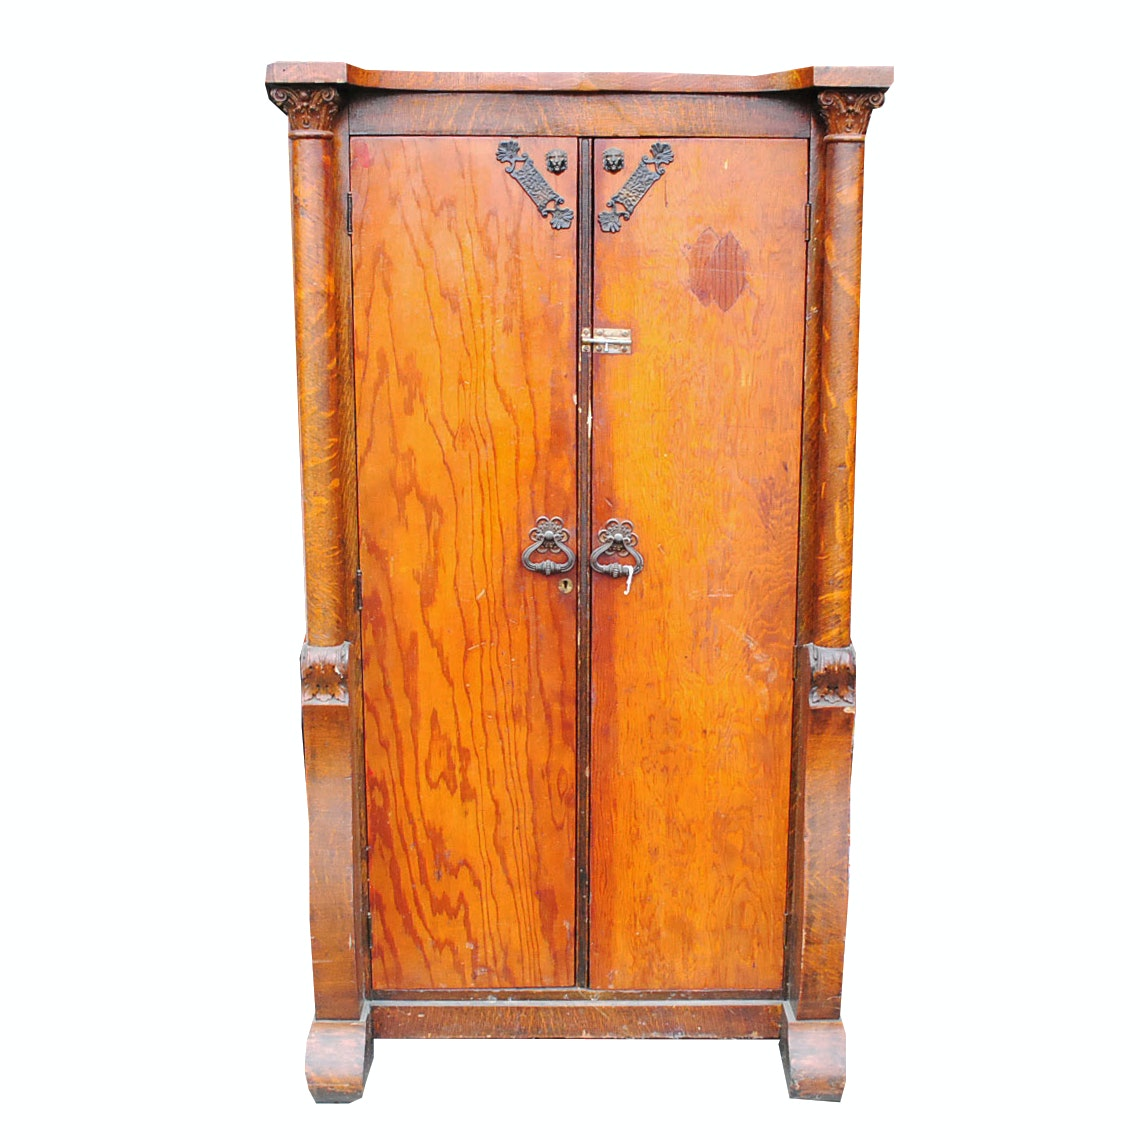 Antique Wardrobe Oak Cabinet with Plywood Doors